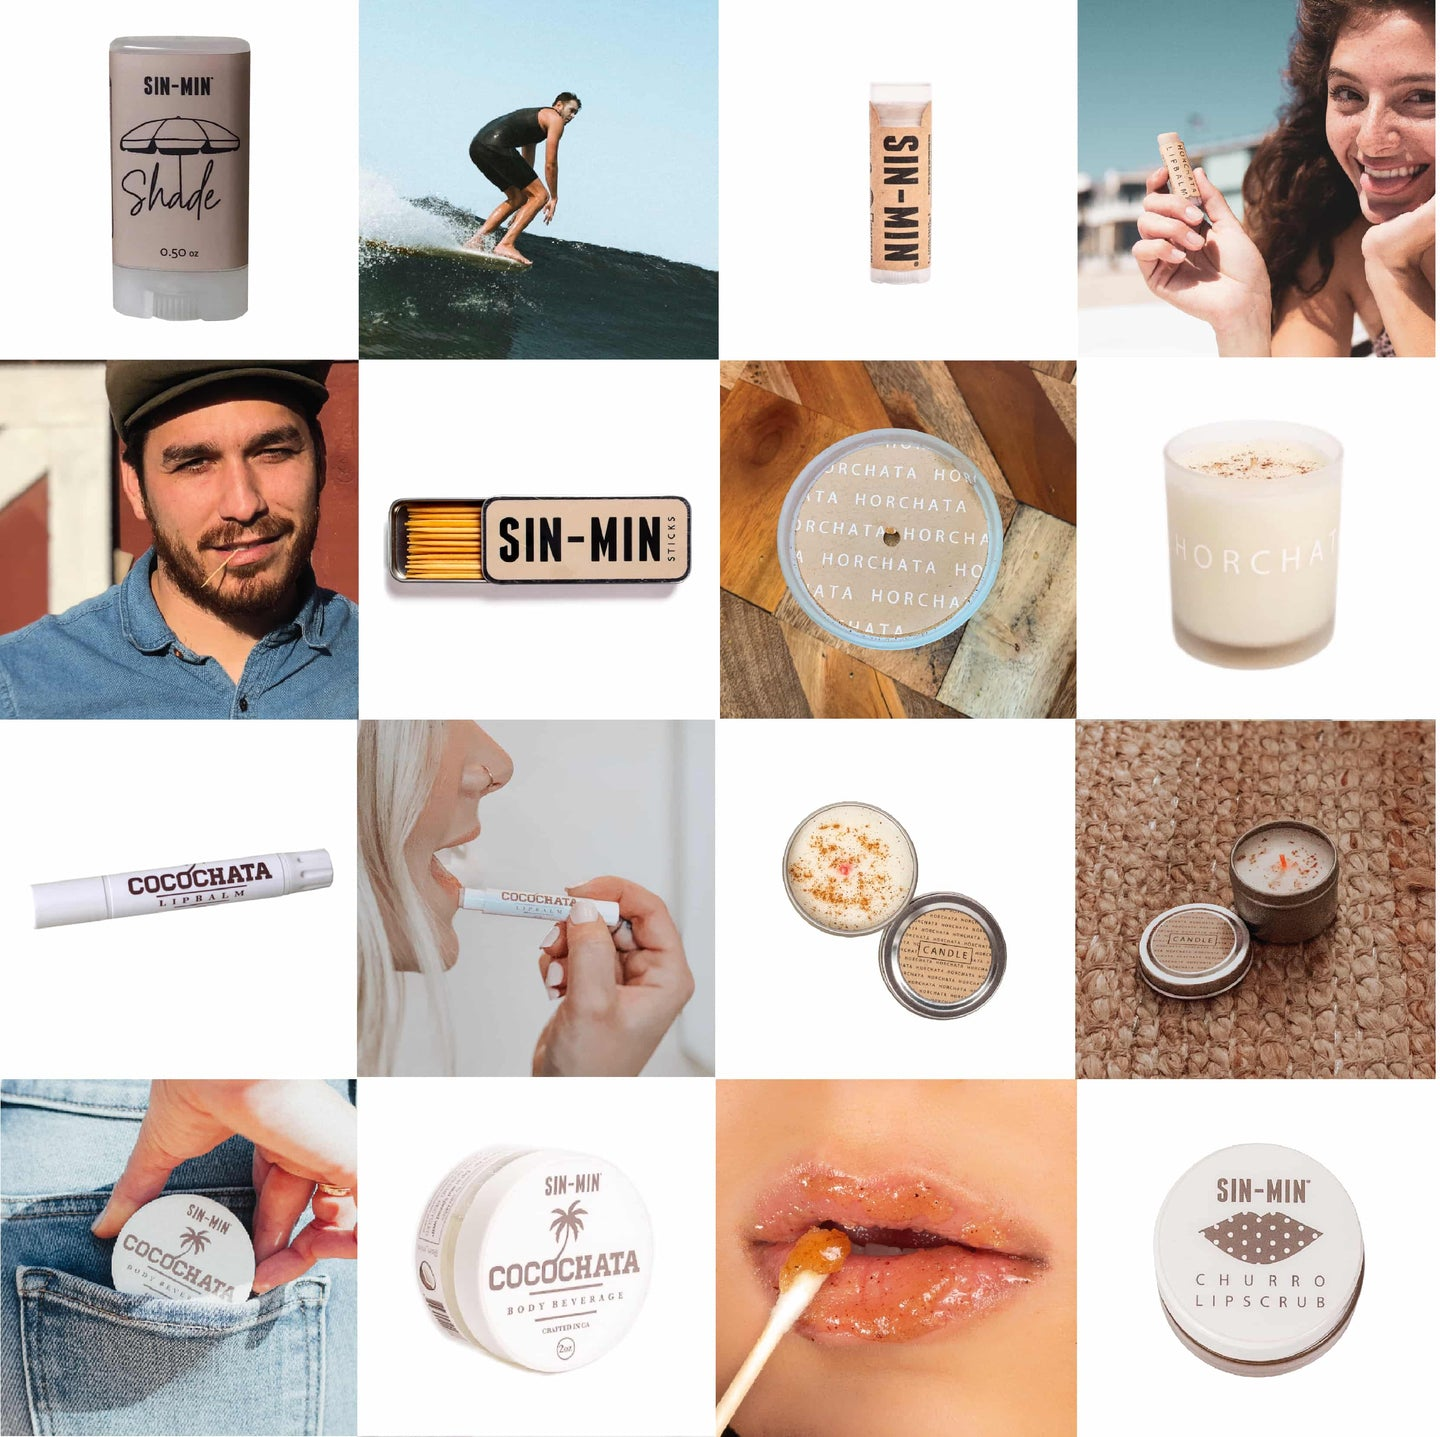 SIN-MIN Product Lifestyle Image Collage